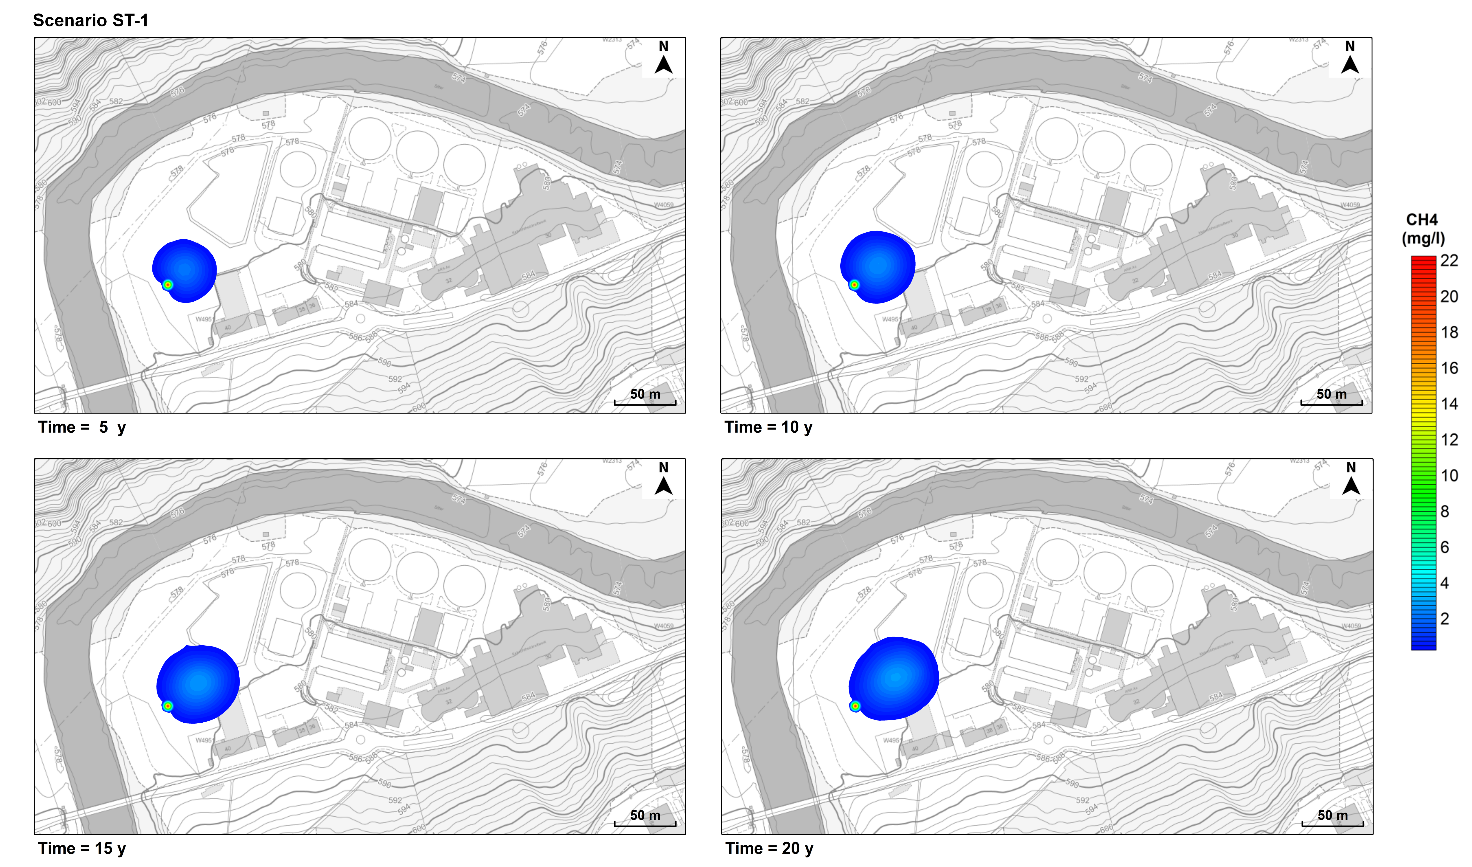 Figure 2. Predicted dissolved methane plume over time (5, 10, 15, and 20 years). Scenario ST-1. Background images taken from Geoportal St. Gallen (https://www.geoportal.ch/st_gallen)